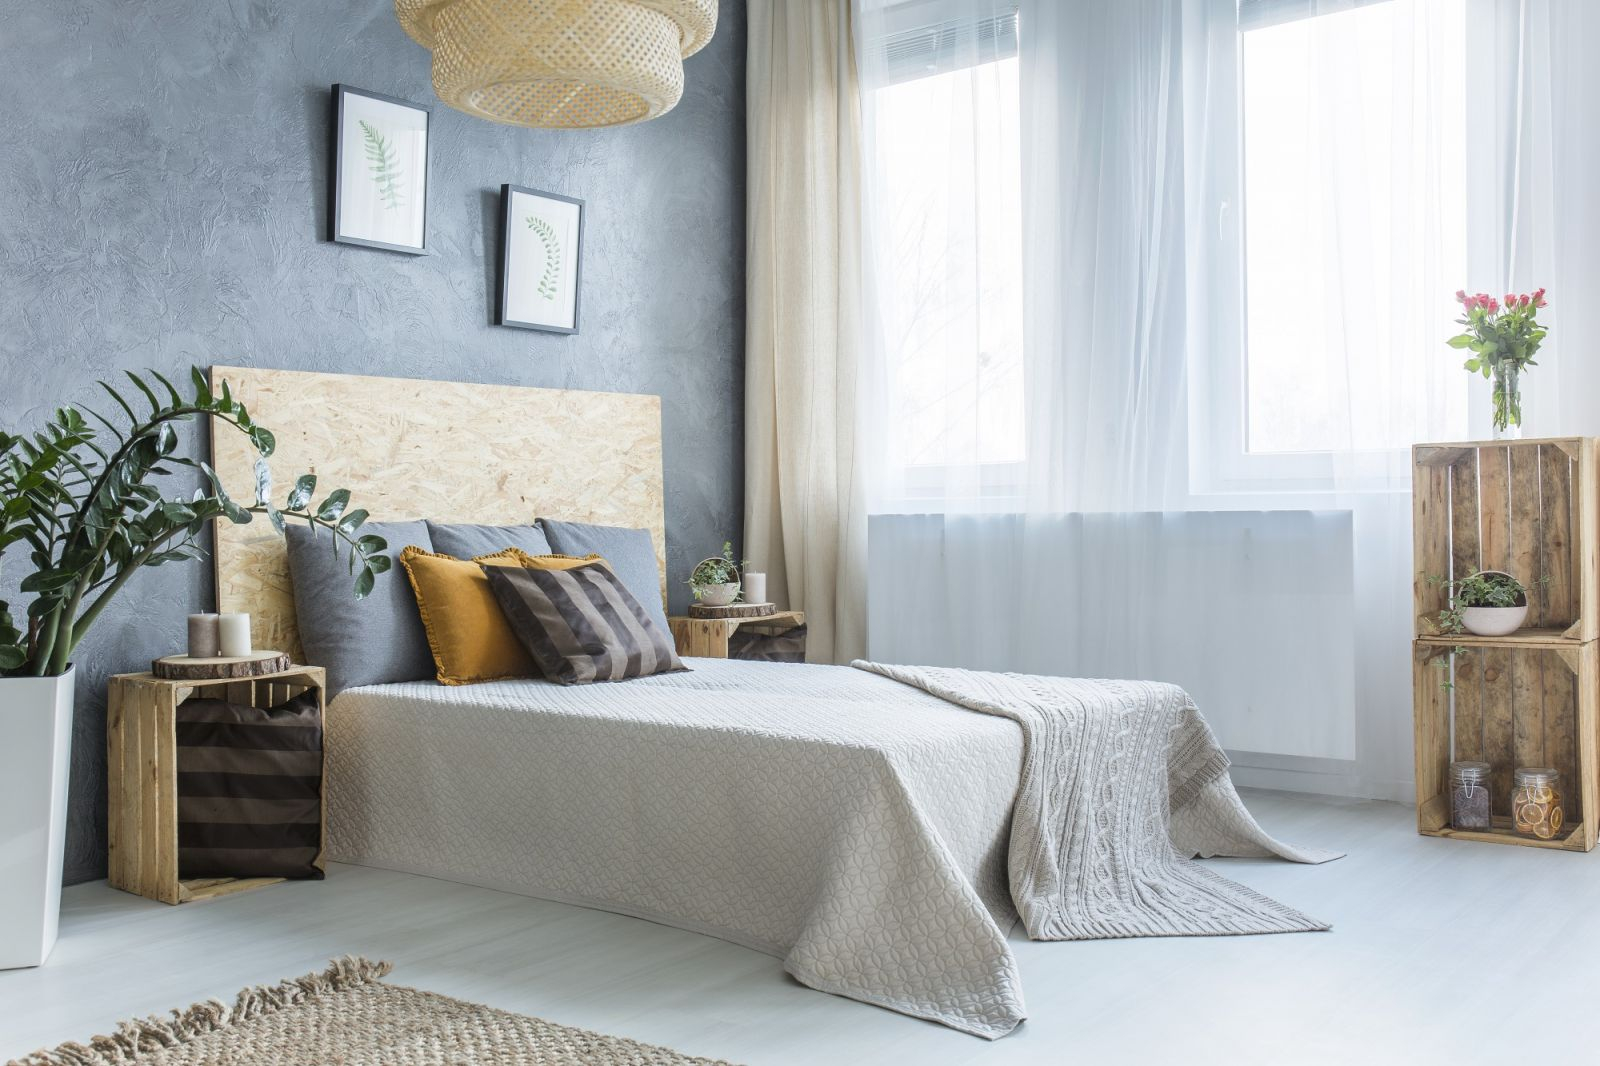 Bedroom Ideas: 52 Modern Design Ideas For Your Bedroom – The Luxpad with Beautiful Contemporary Interior Design Ideas